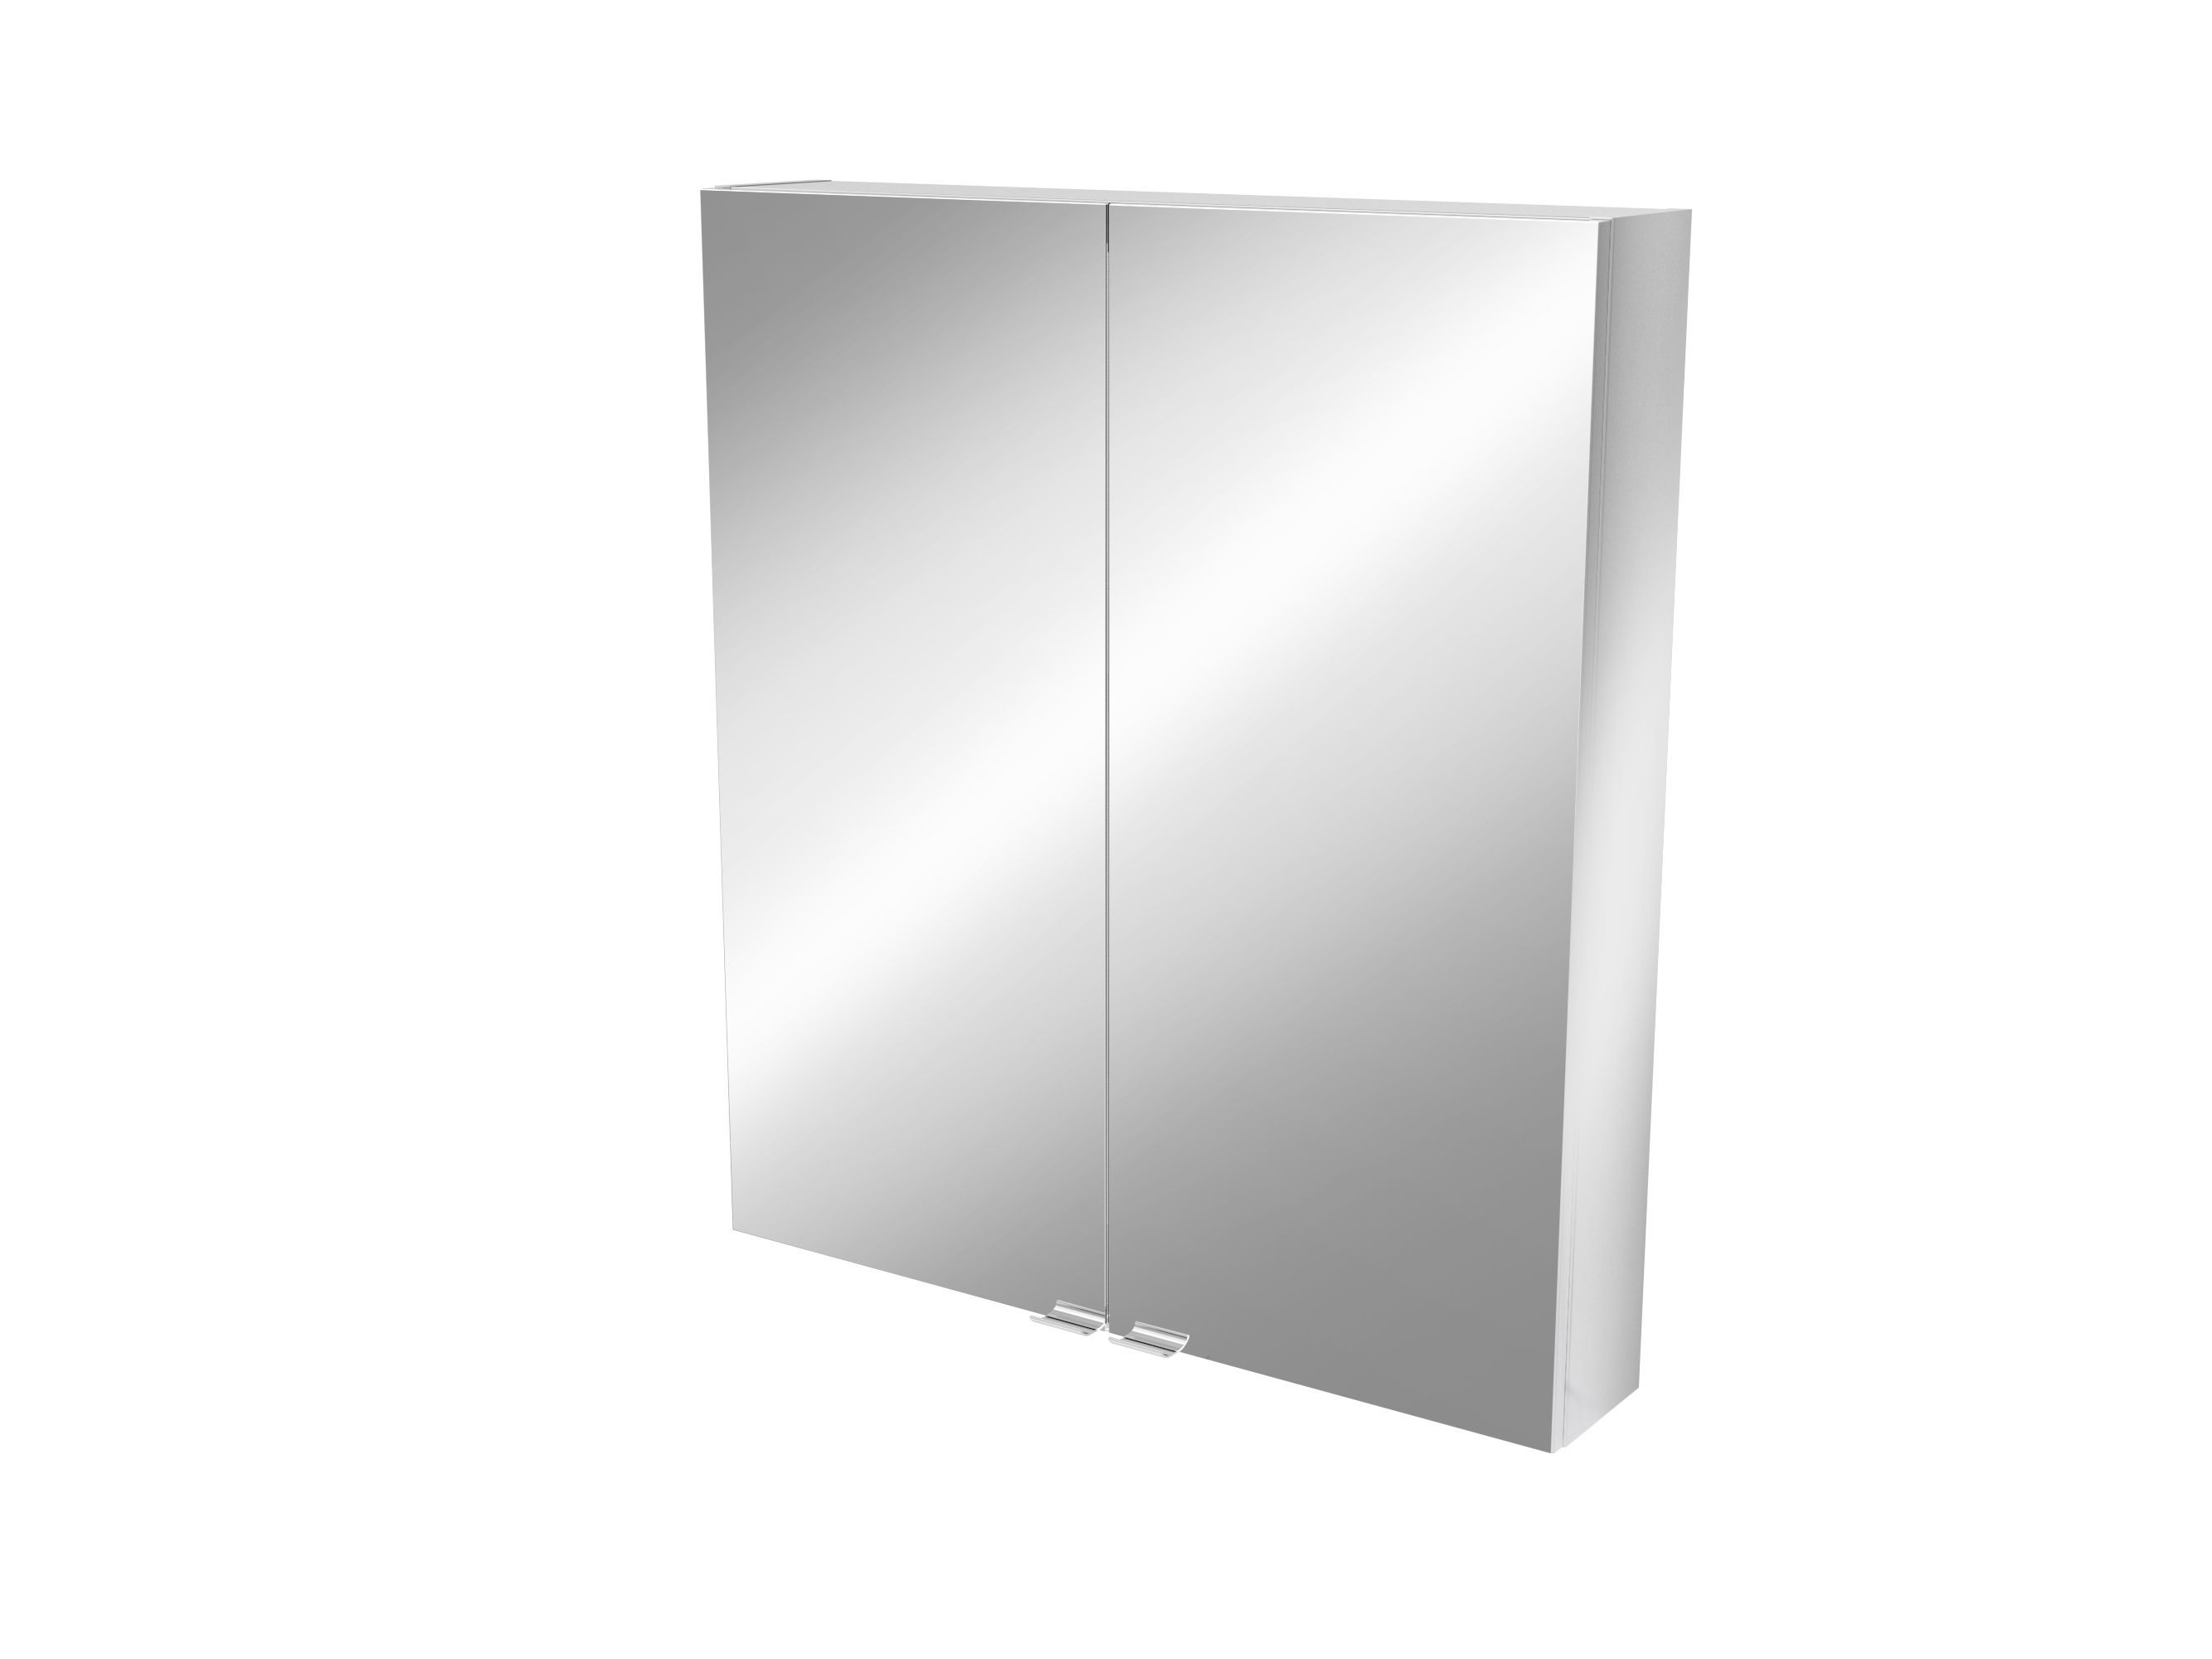 Cooke & Lewis Imandra Mirrored Wall Cabinet, (w)800mm